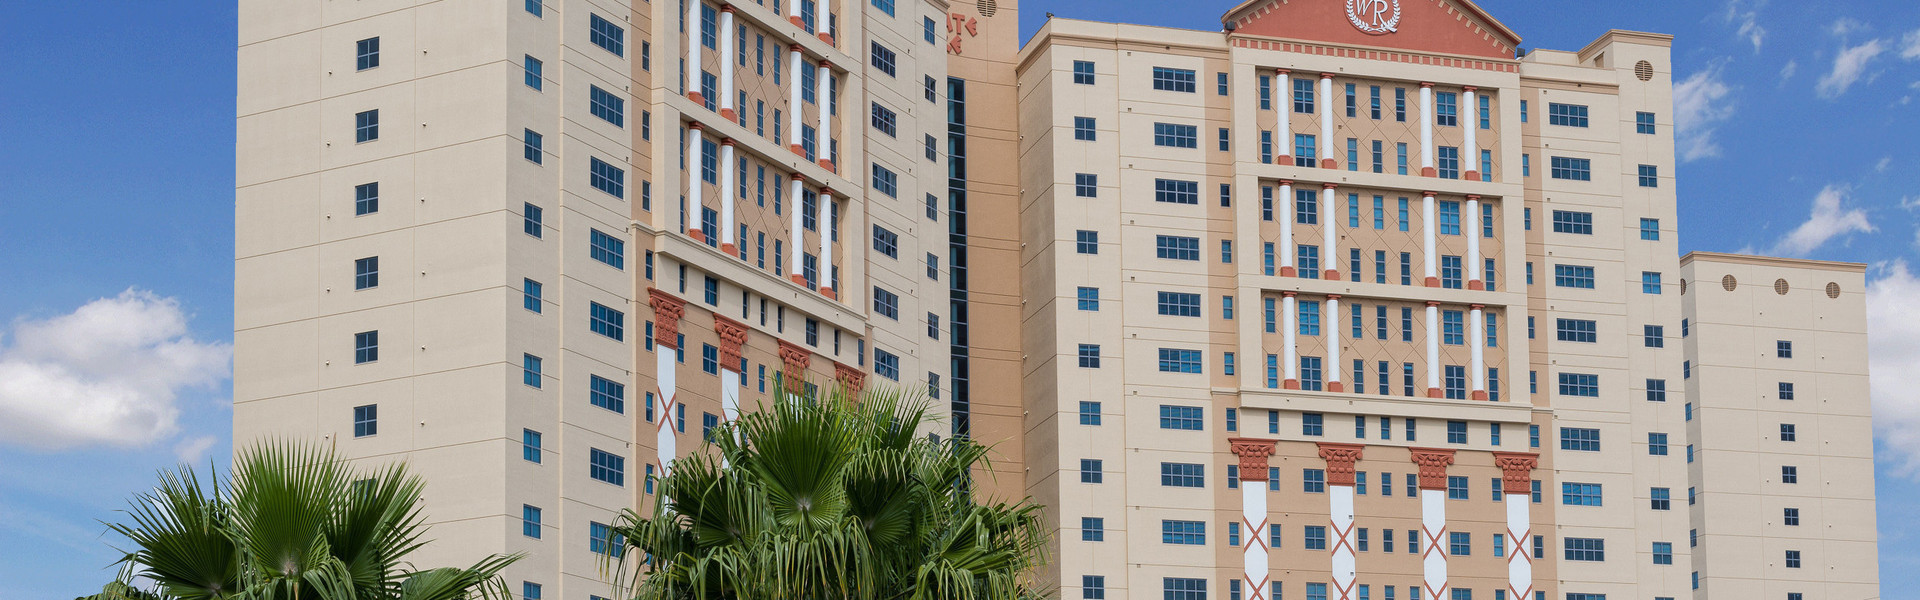 Pics of Orlando Florida Hotels | Westgate Palace Orlando | Resorts Near International Drive, Orlando, FL 32819